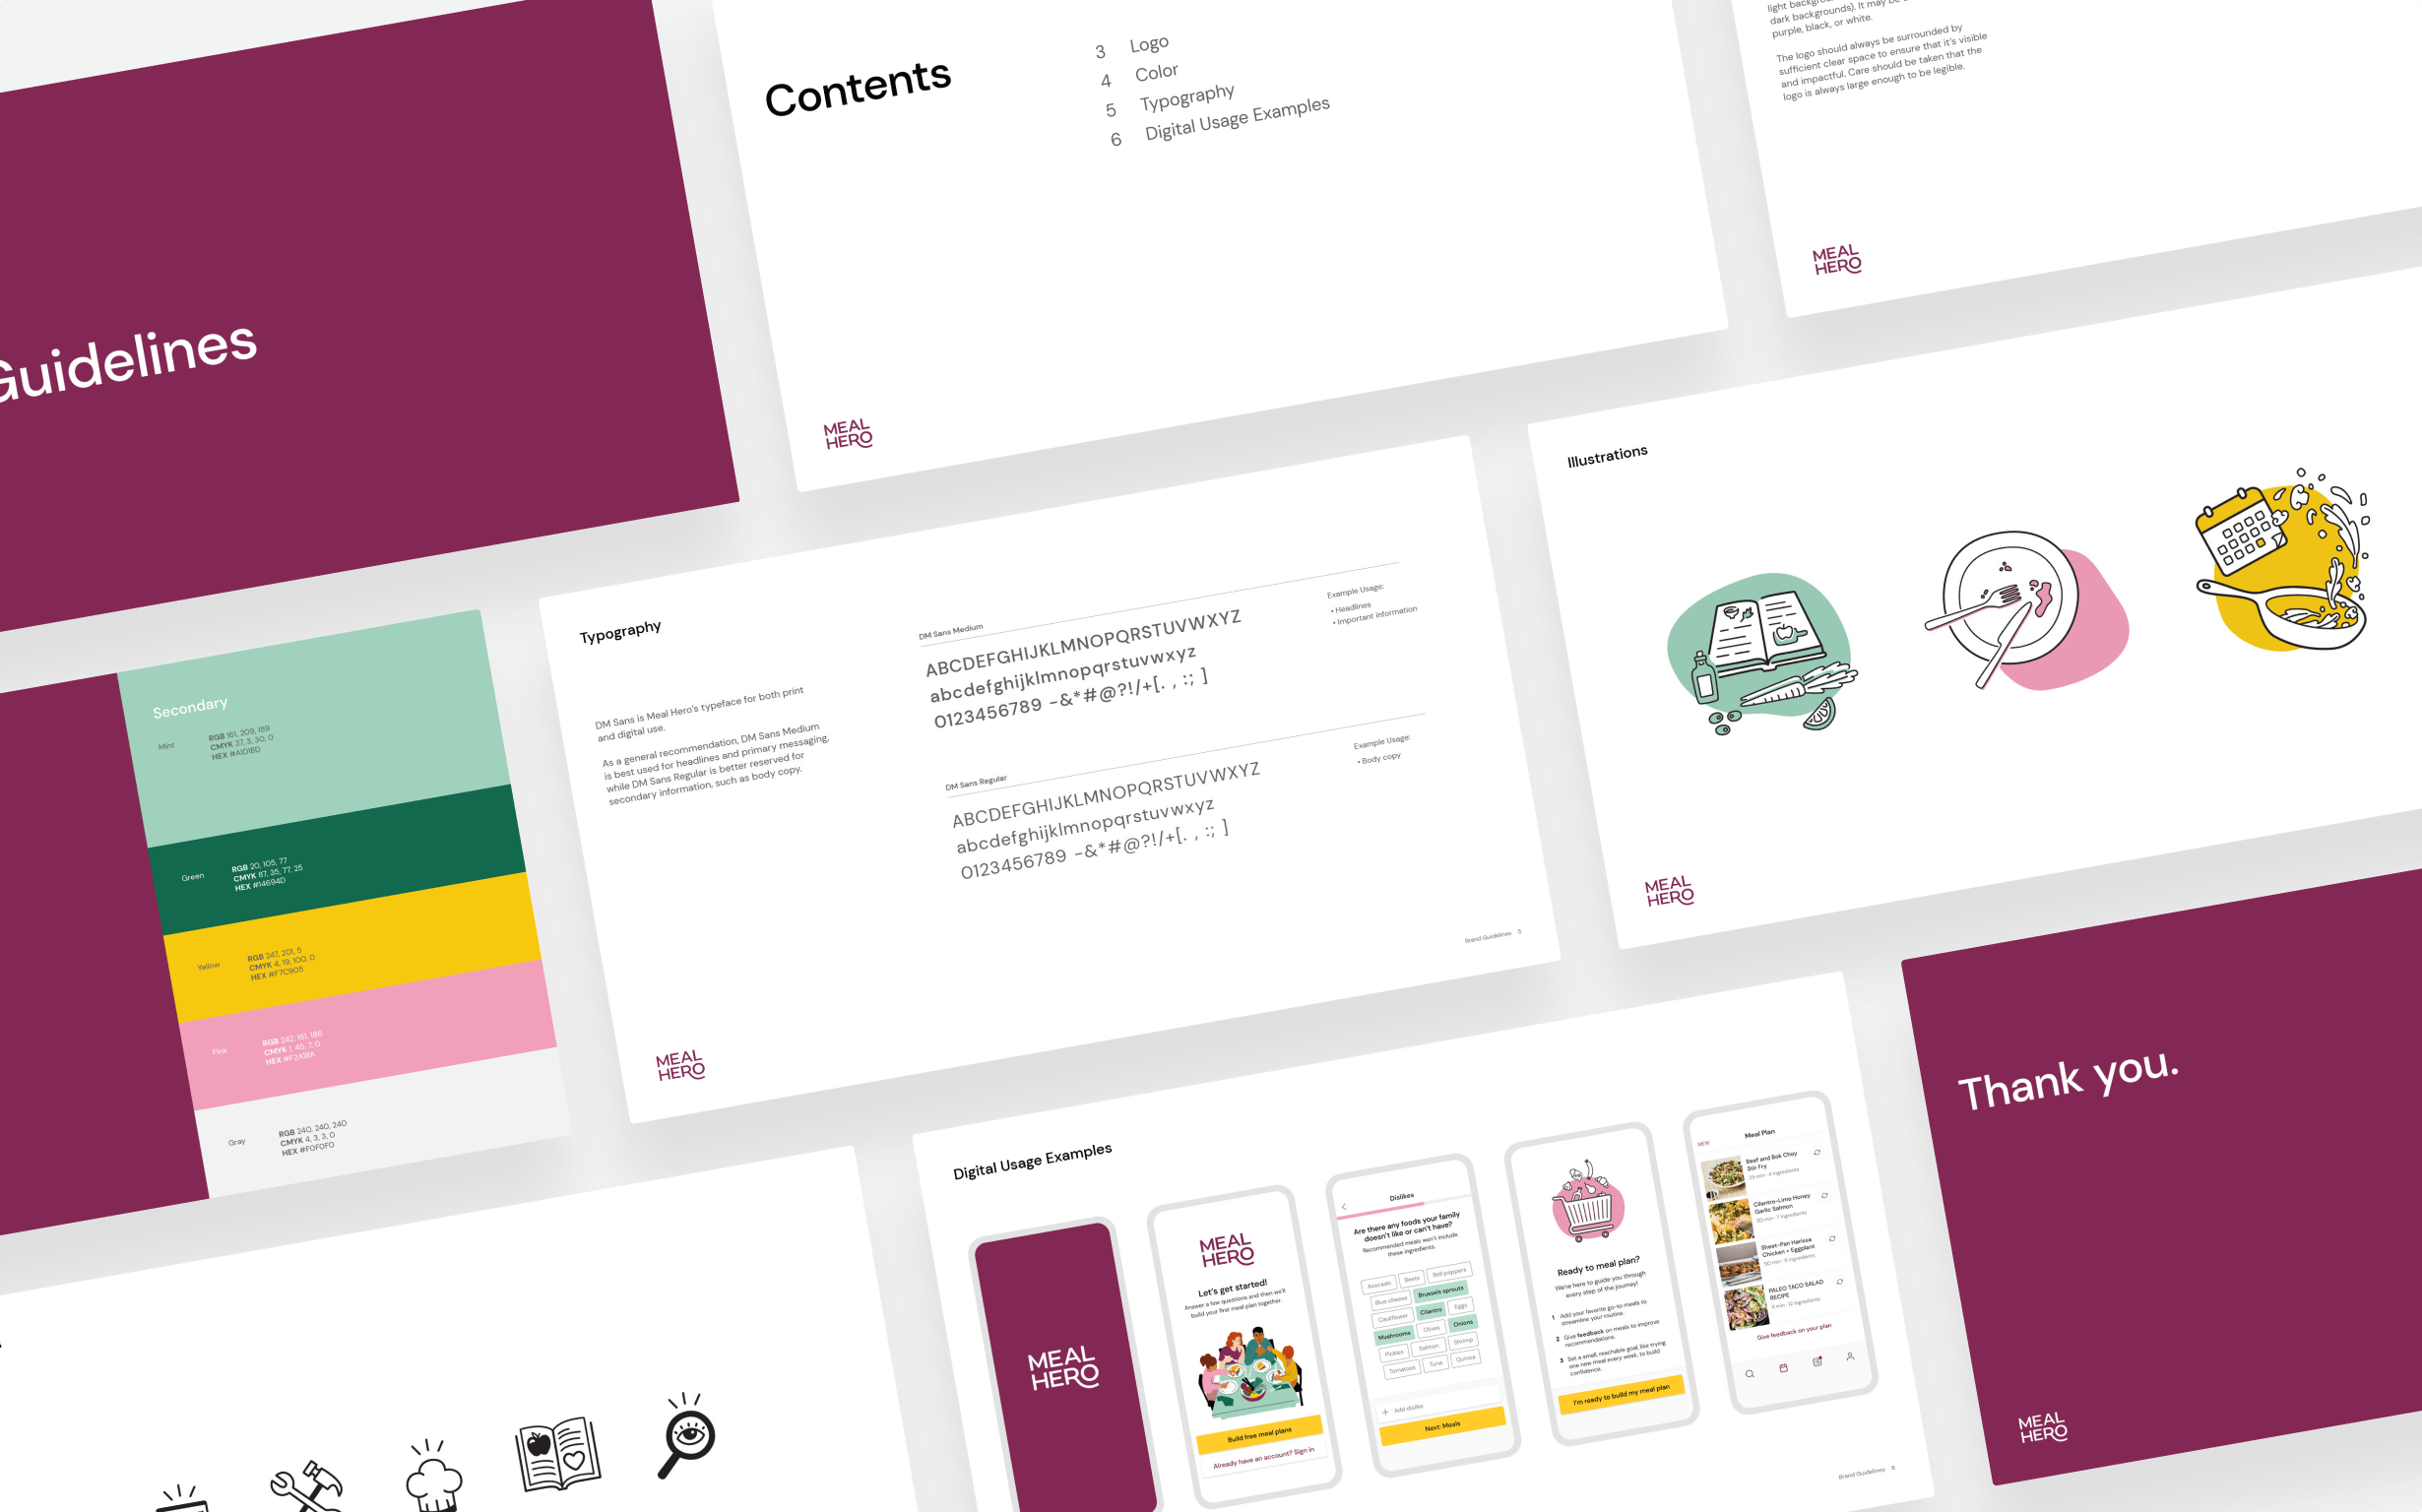 A slide deck outlining Meal Hero's' brand guidelines including colors, typography, illustrations, and digital usage.